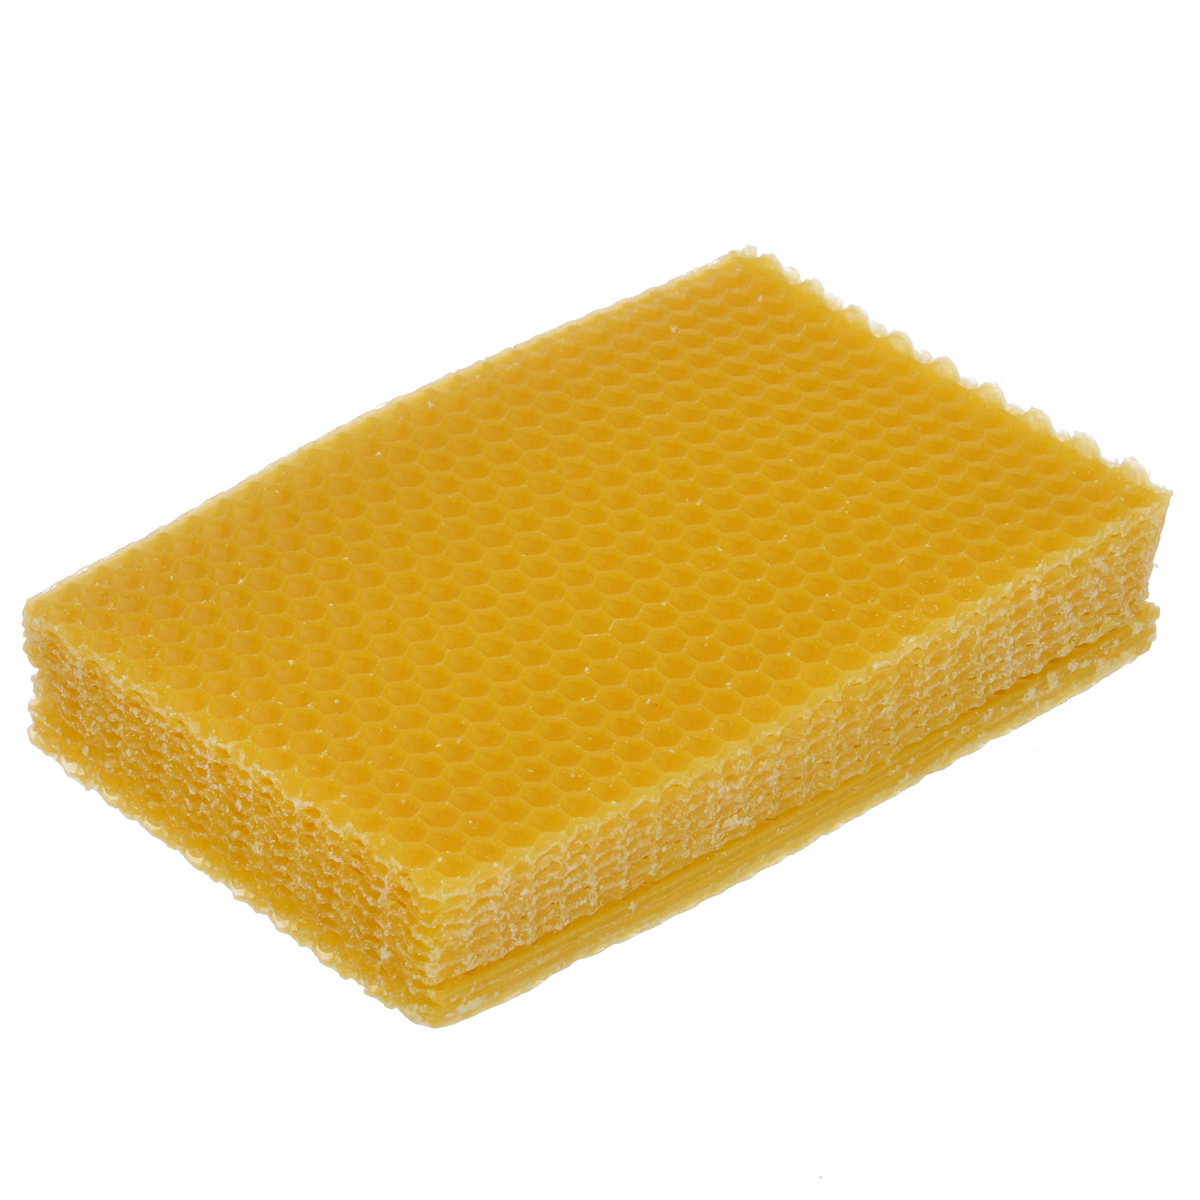 10pcs Beekeeping Honeycomb Foundation Wax Frames Honey Hive Garden Equipment Tool